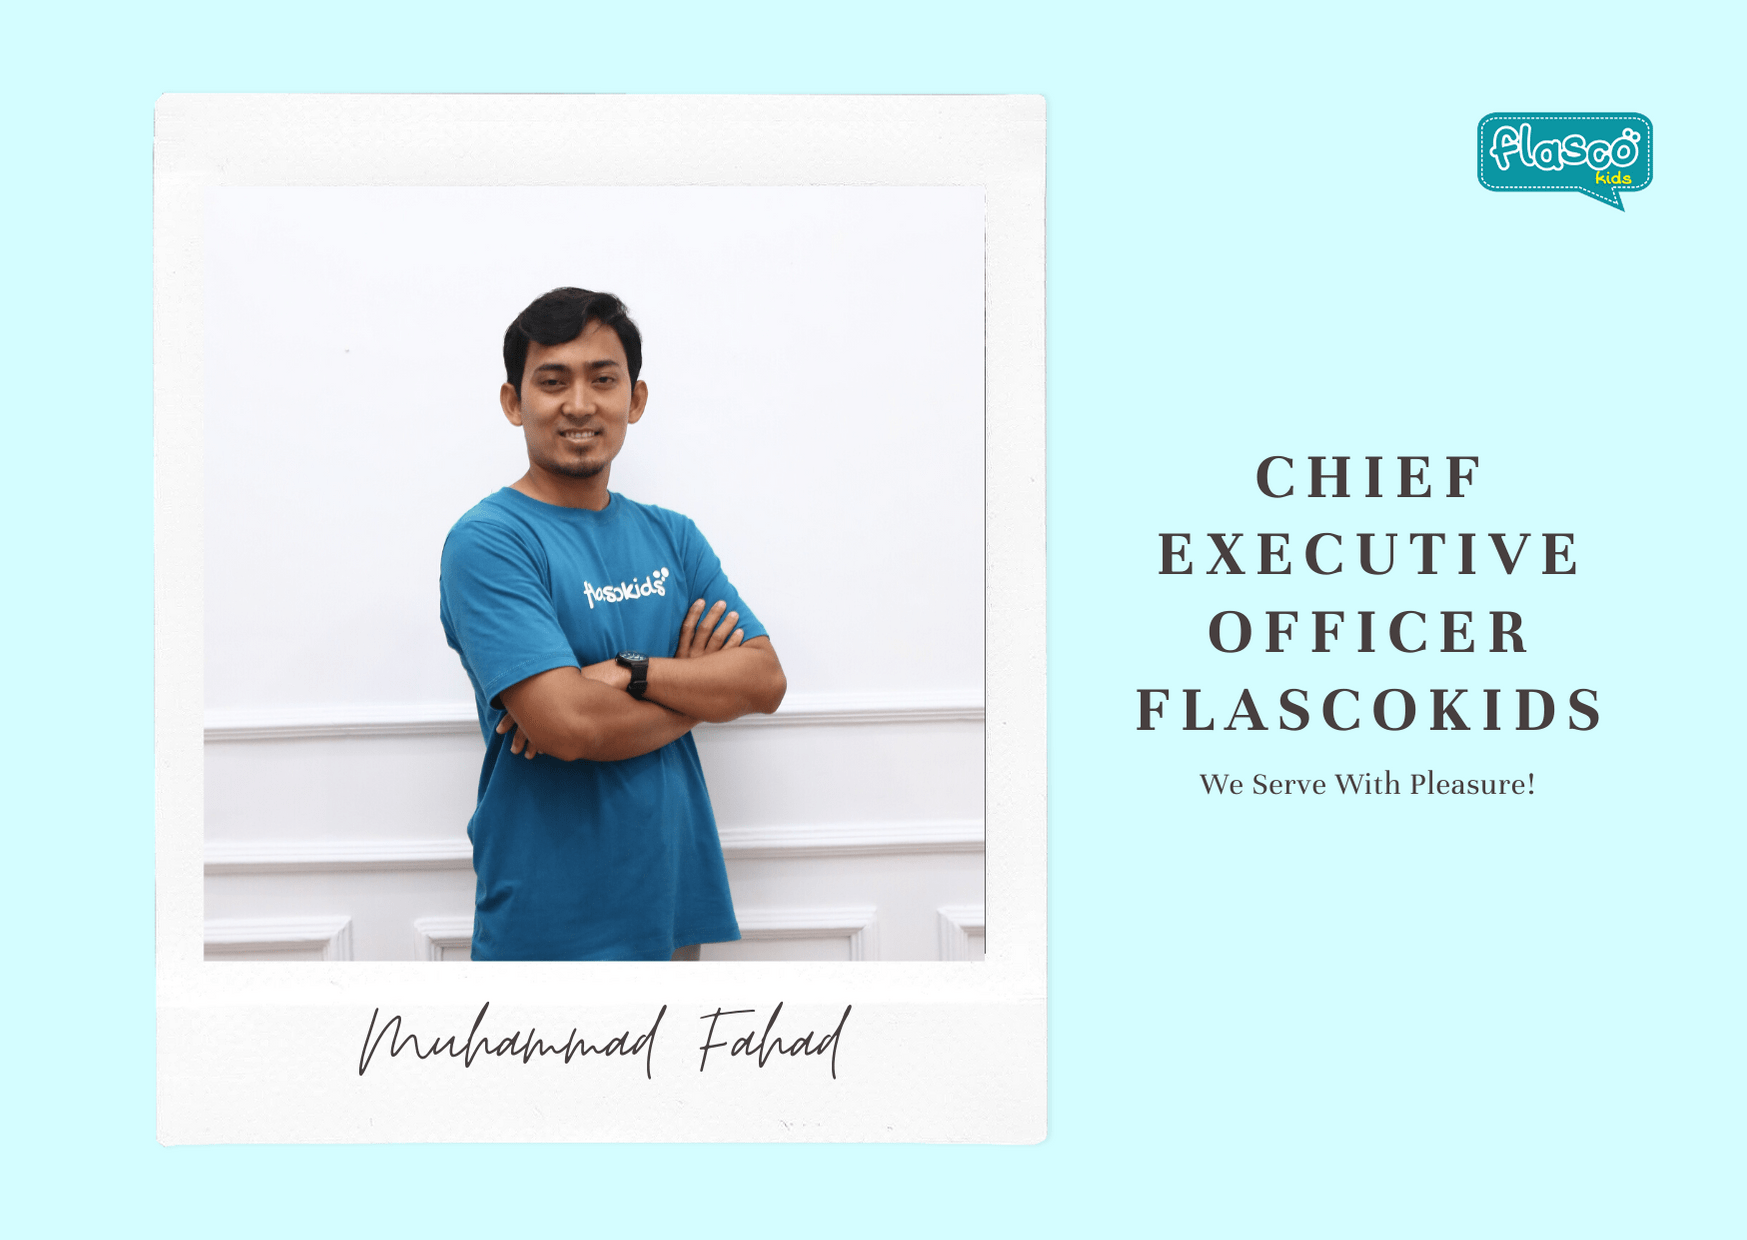 chief executive officer flascokids